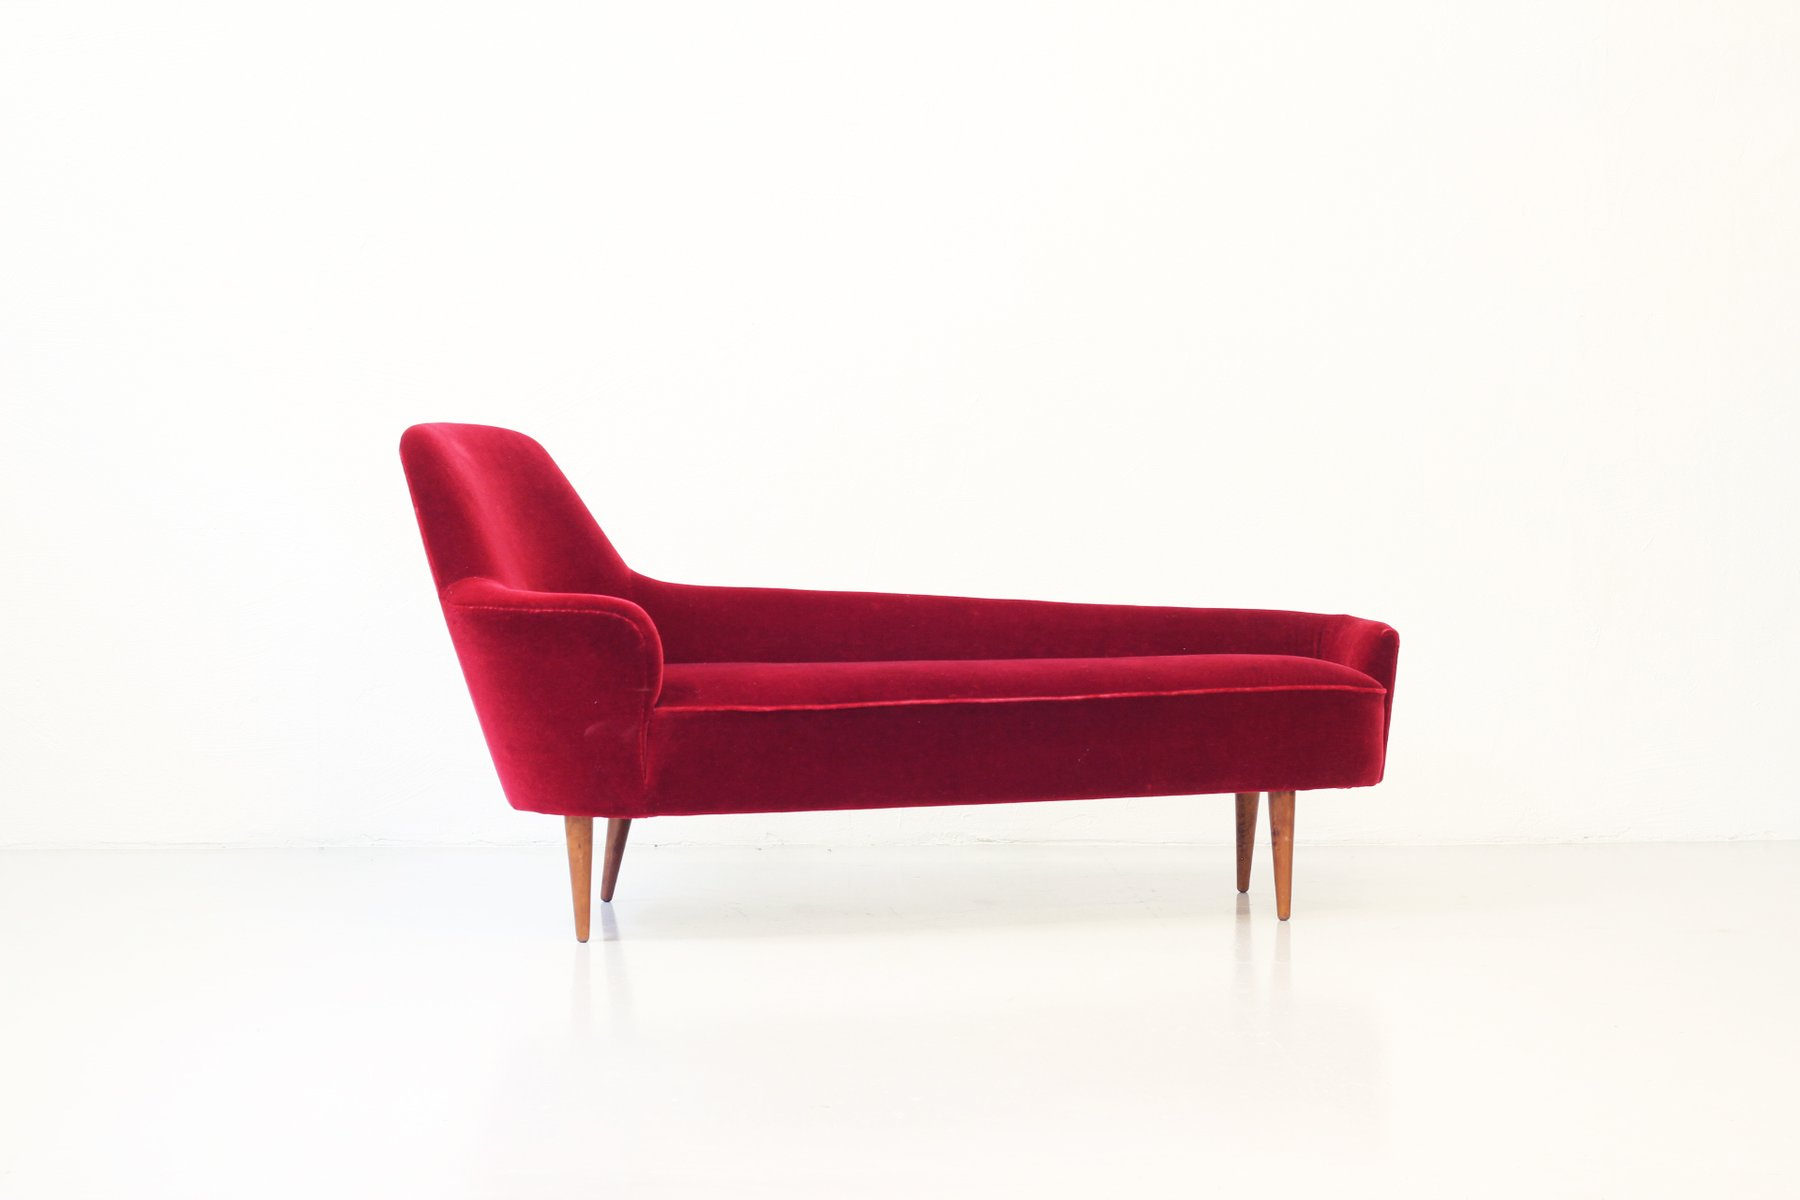 Singoalla chaise lounge by gillis lundgren for ikea 1961 for Chaise and lounge